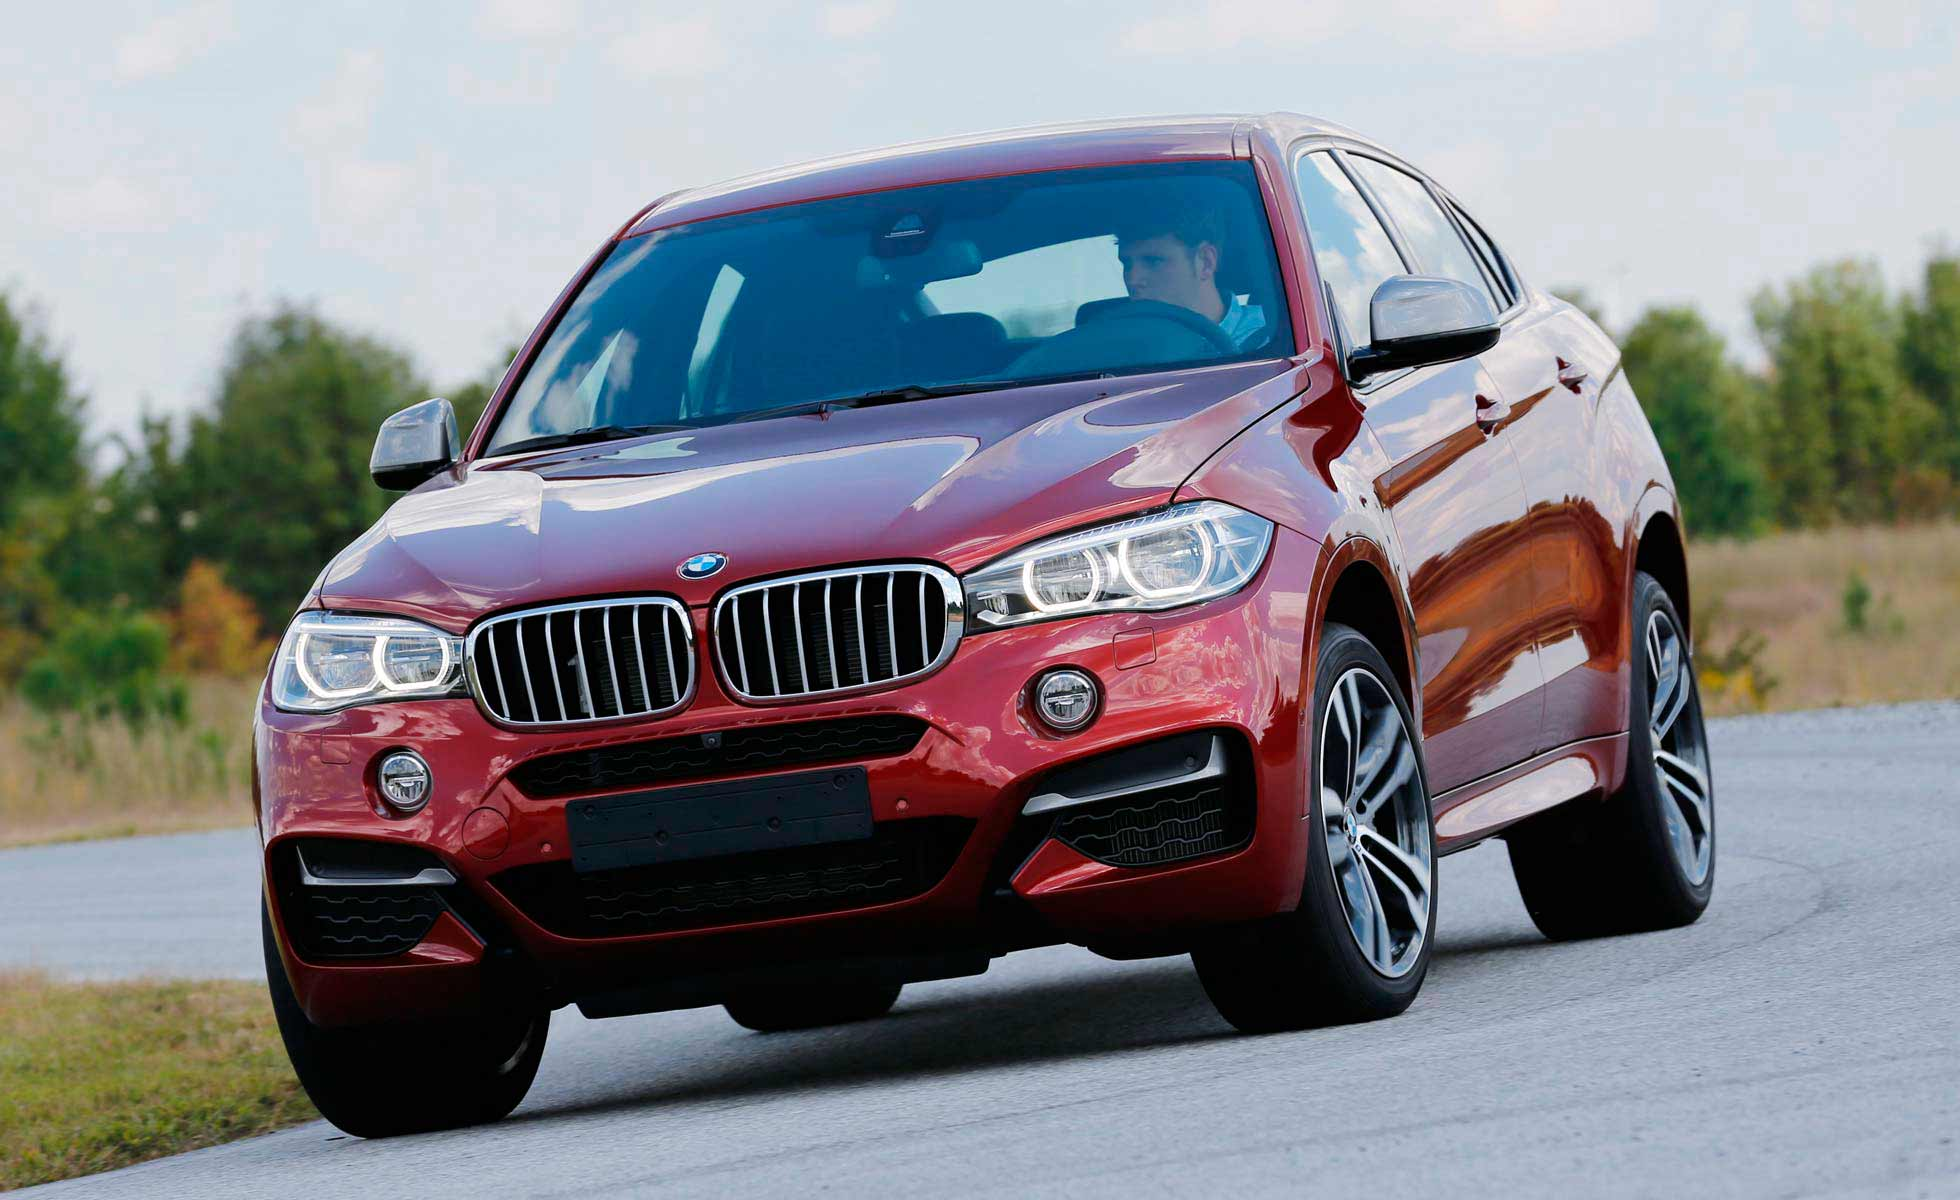 bmw x6 review 2015 first drive motoring research. Black Bedroom Furniture Sets. Home Design Ideas